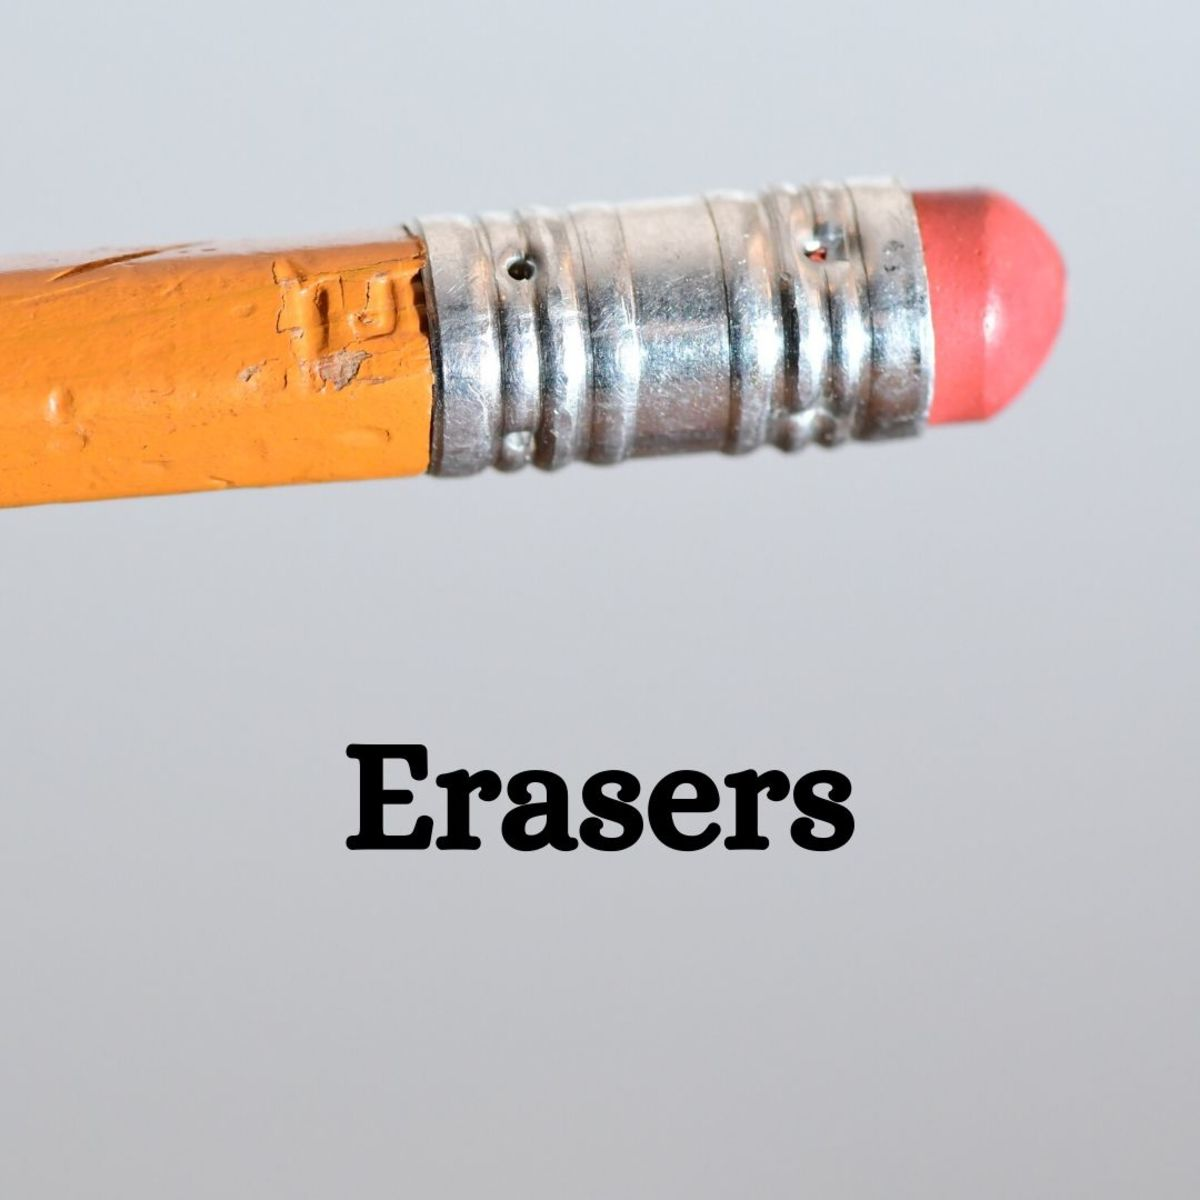 Erasers can come in all shapes and sizes—why not collect them?